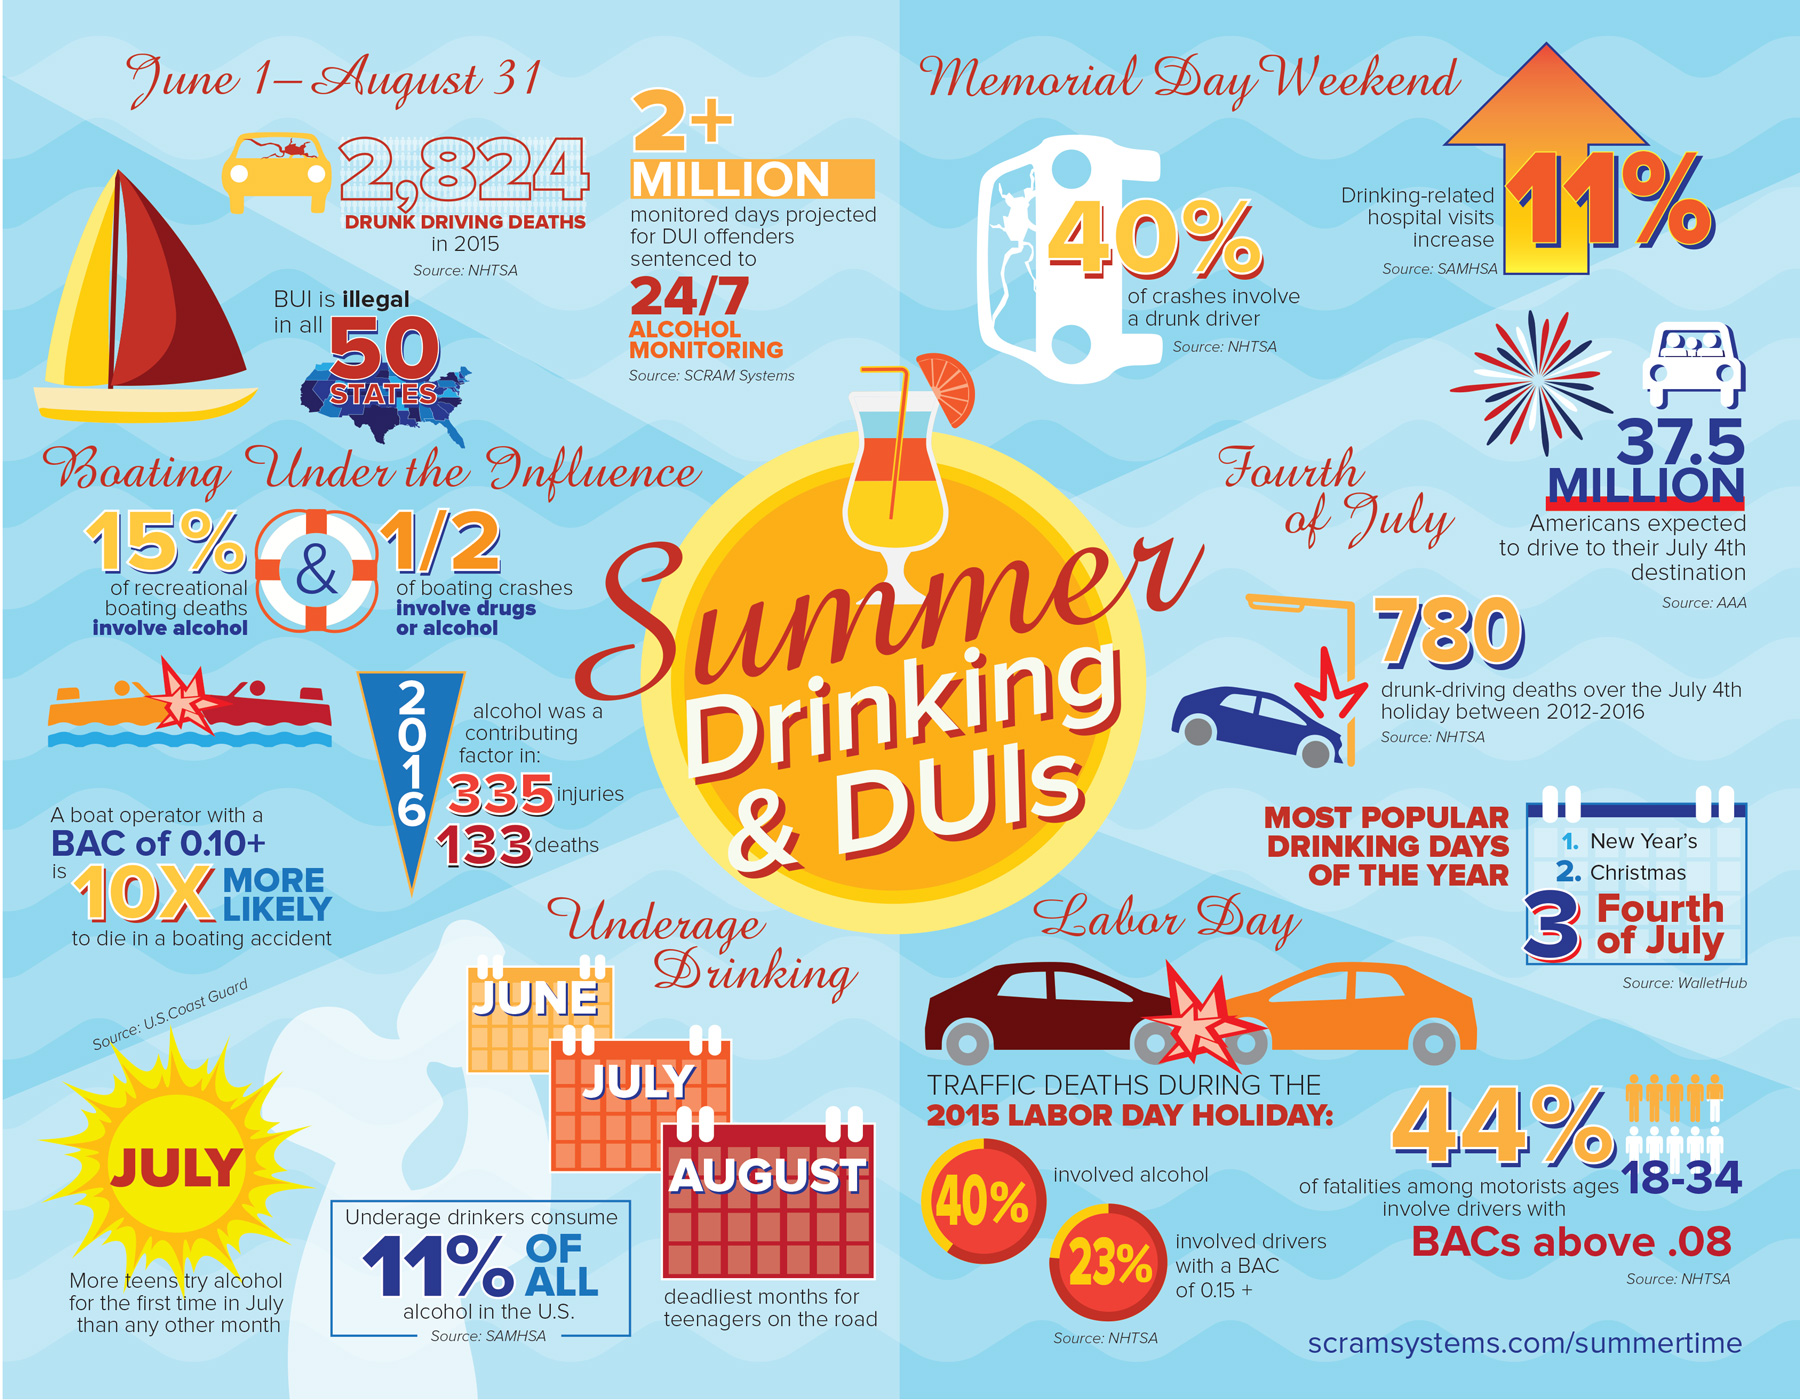 Summer Drinking and Drunk Driving Infographic